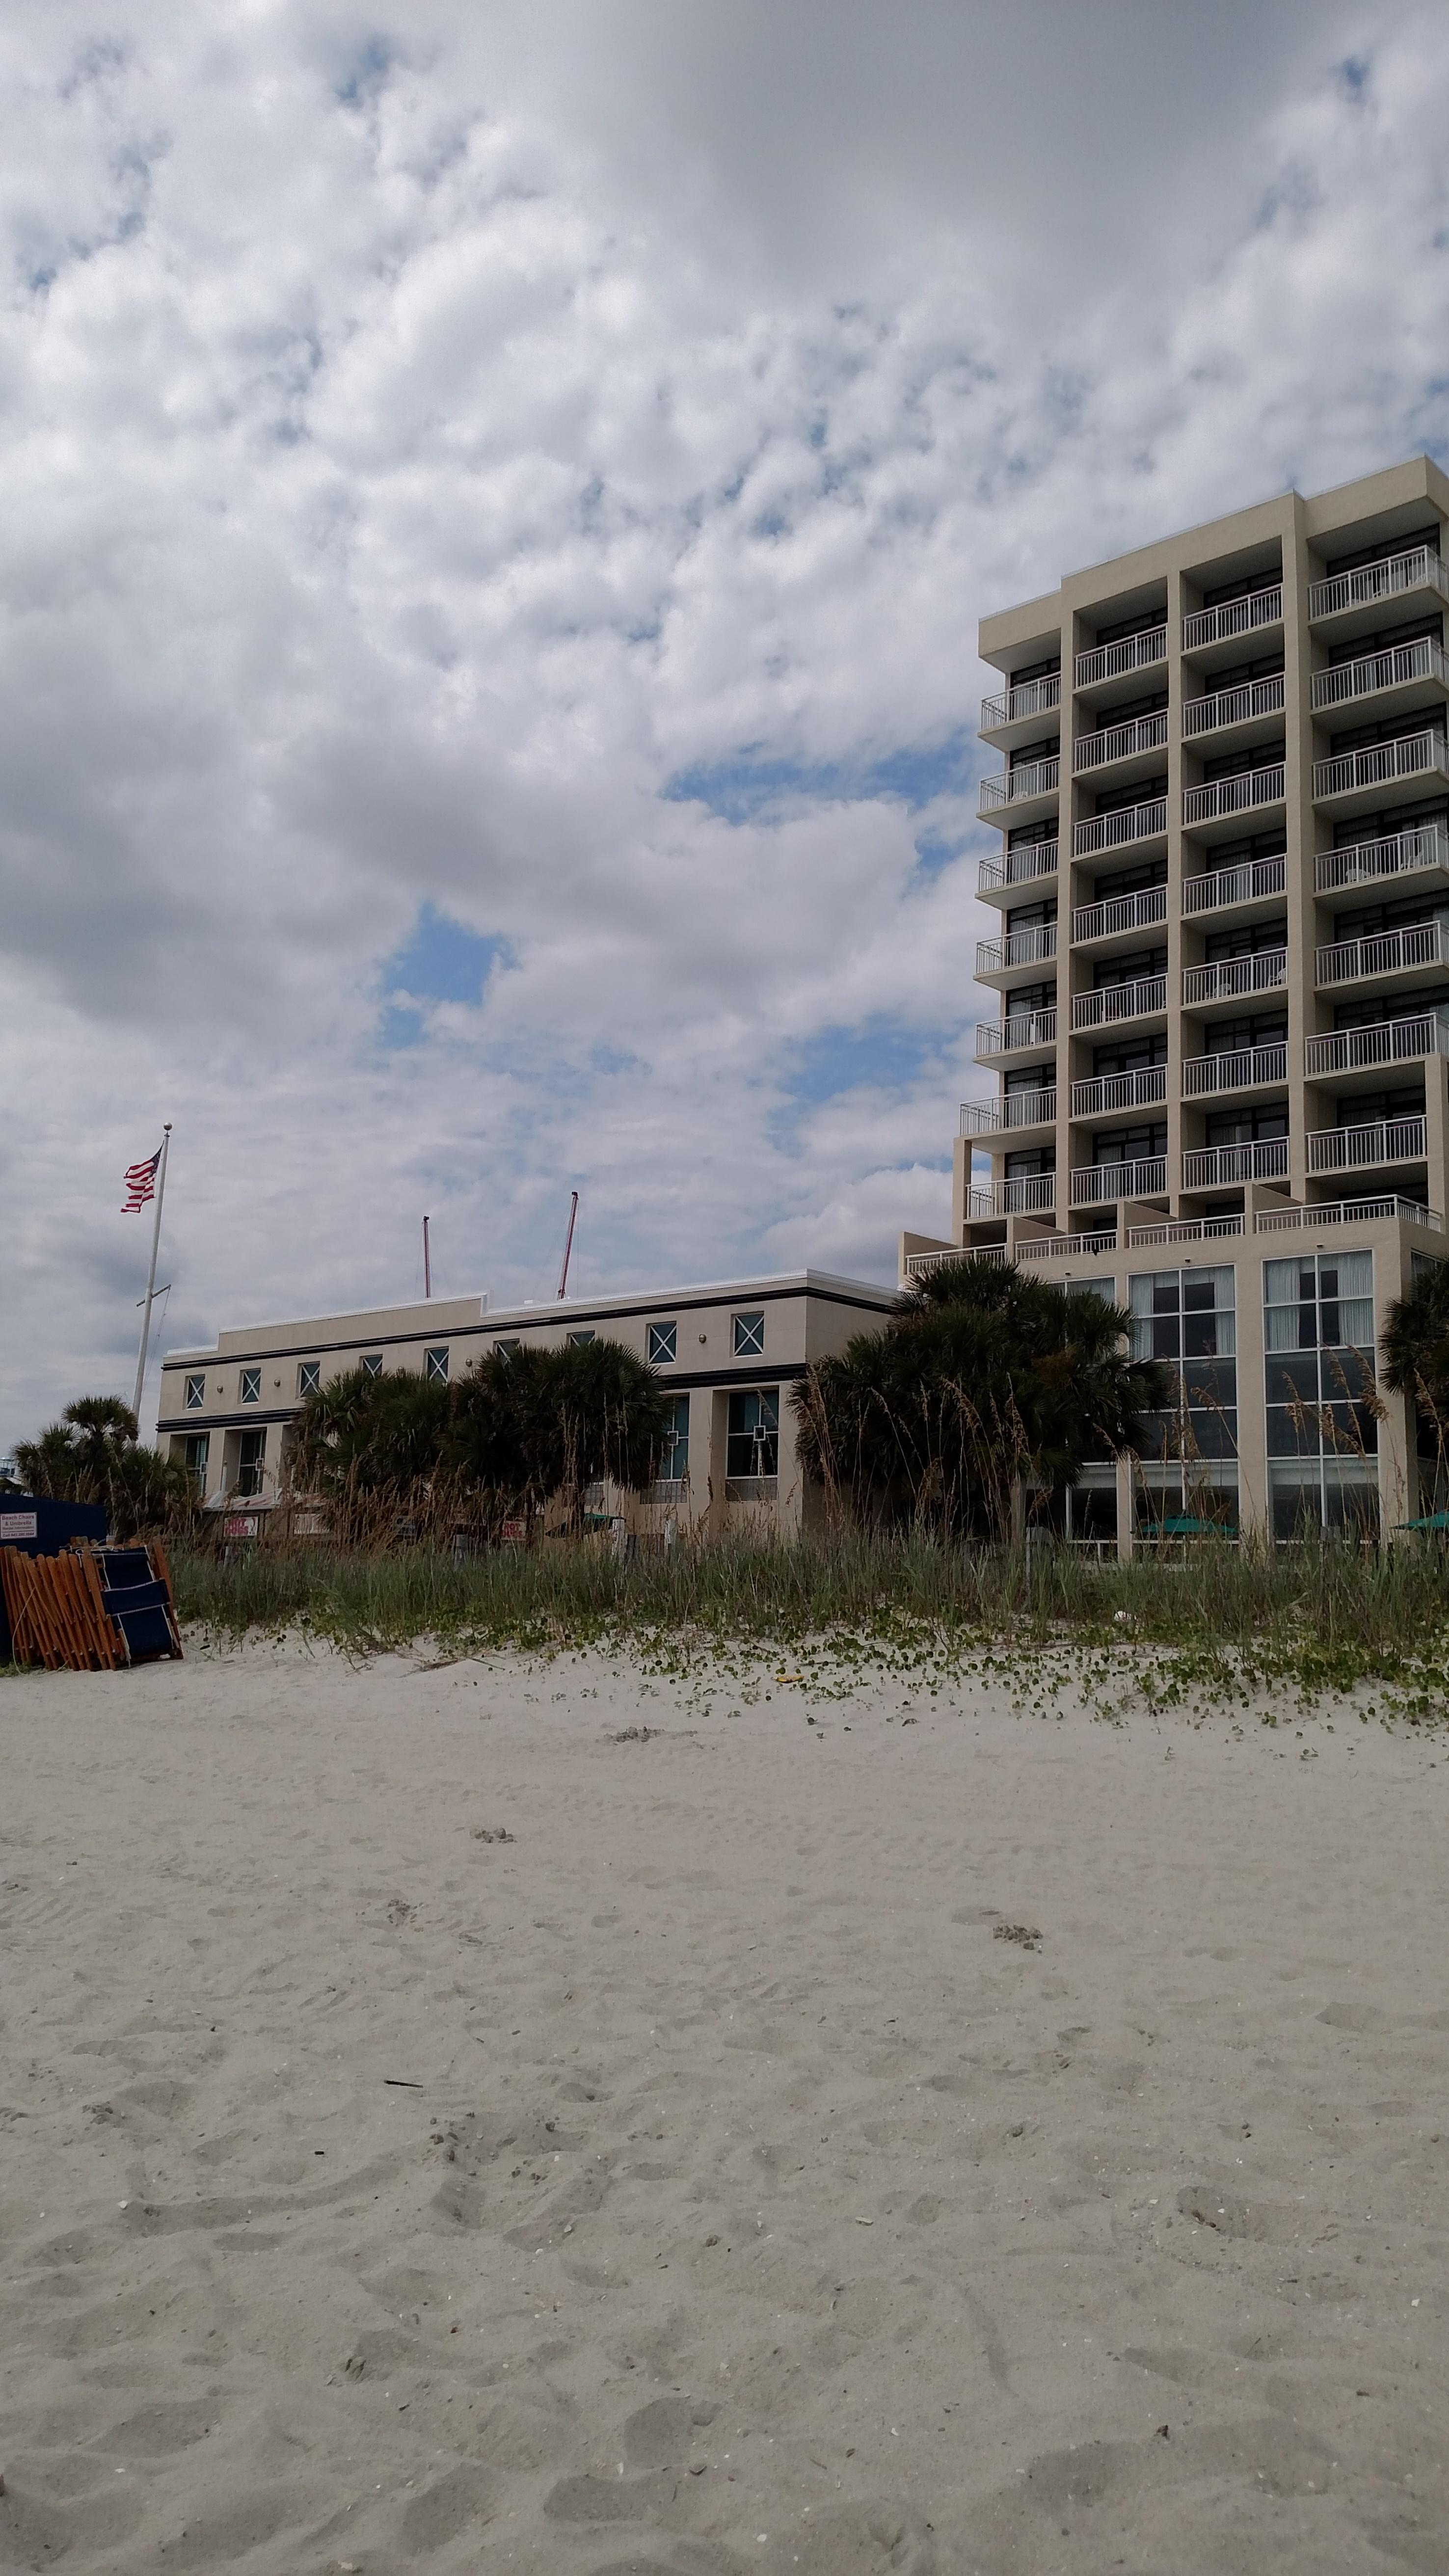 Hotel view from the beach.